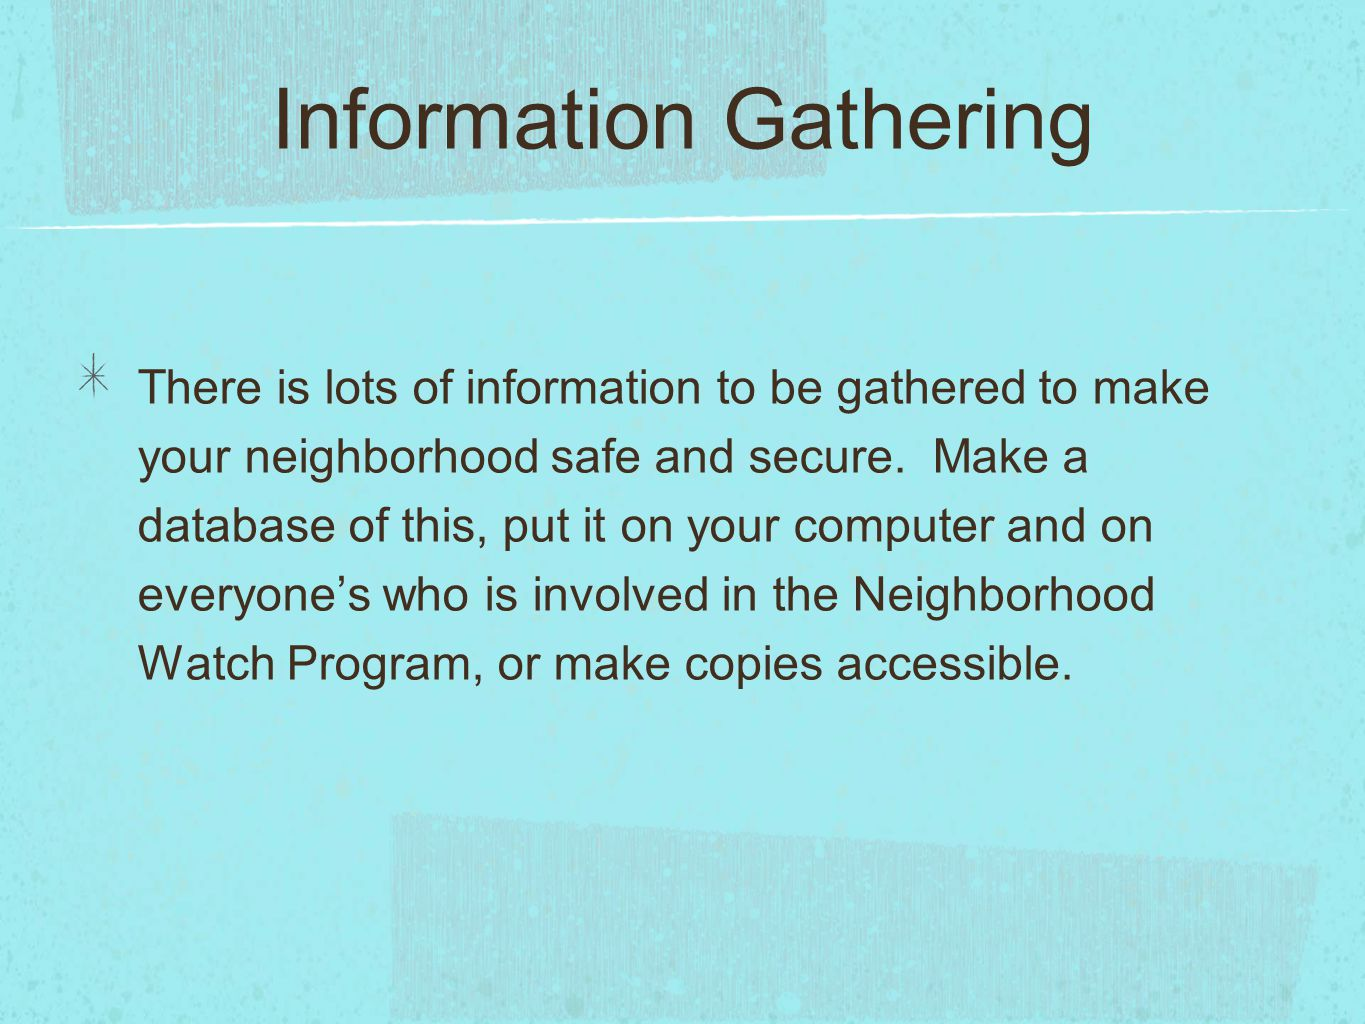 Information Gathering There is lots of information to be gathered to make your neighborhood safe and secure. Make a database of this, put it on your c